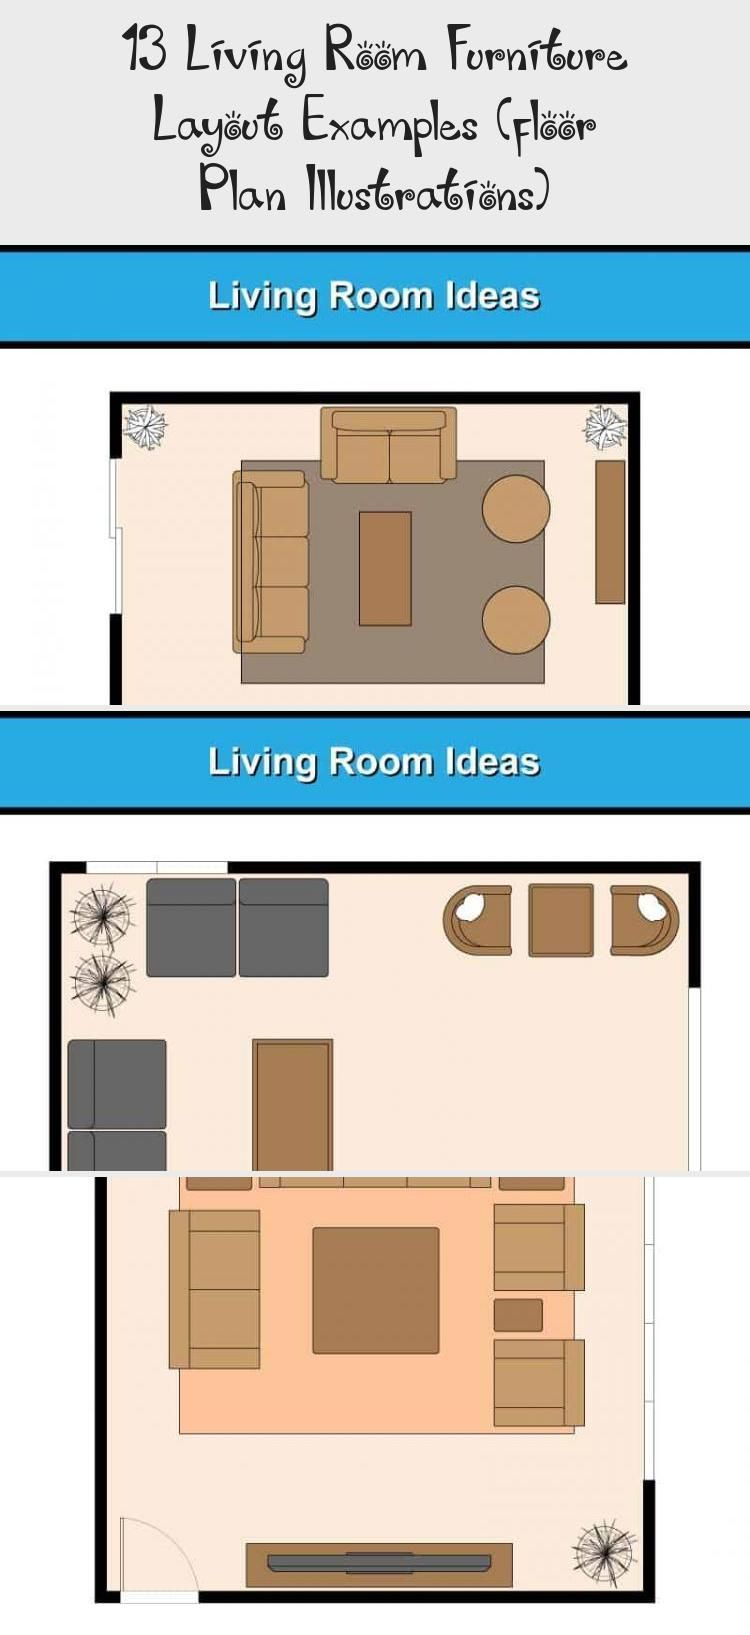 13 Living Room Furniture Layout Examples Floor Plan Illustrations Decor Decor Exampl Living Room Furniture Layout Furniture Layout Living Room Floor Plans